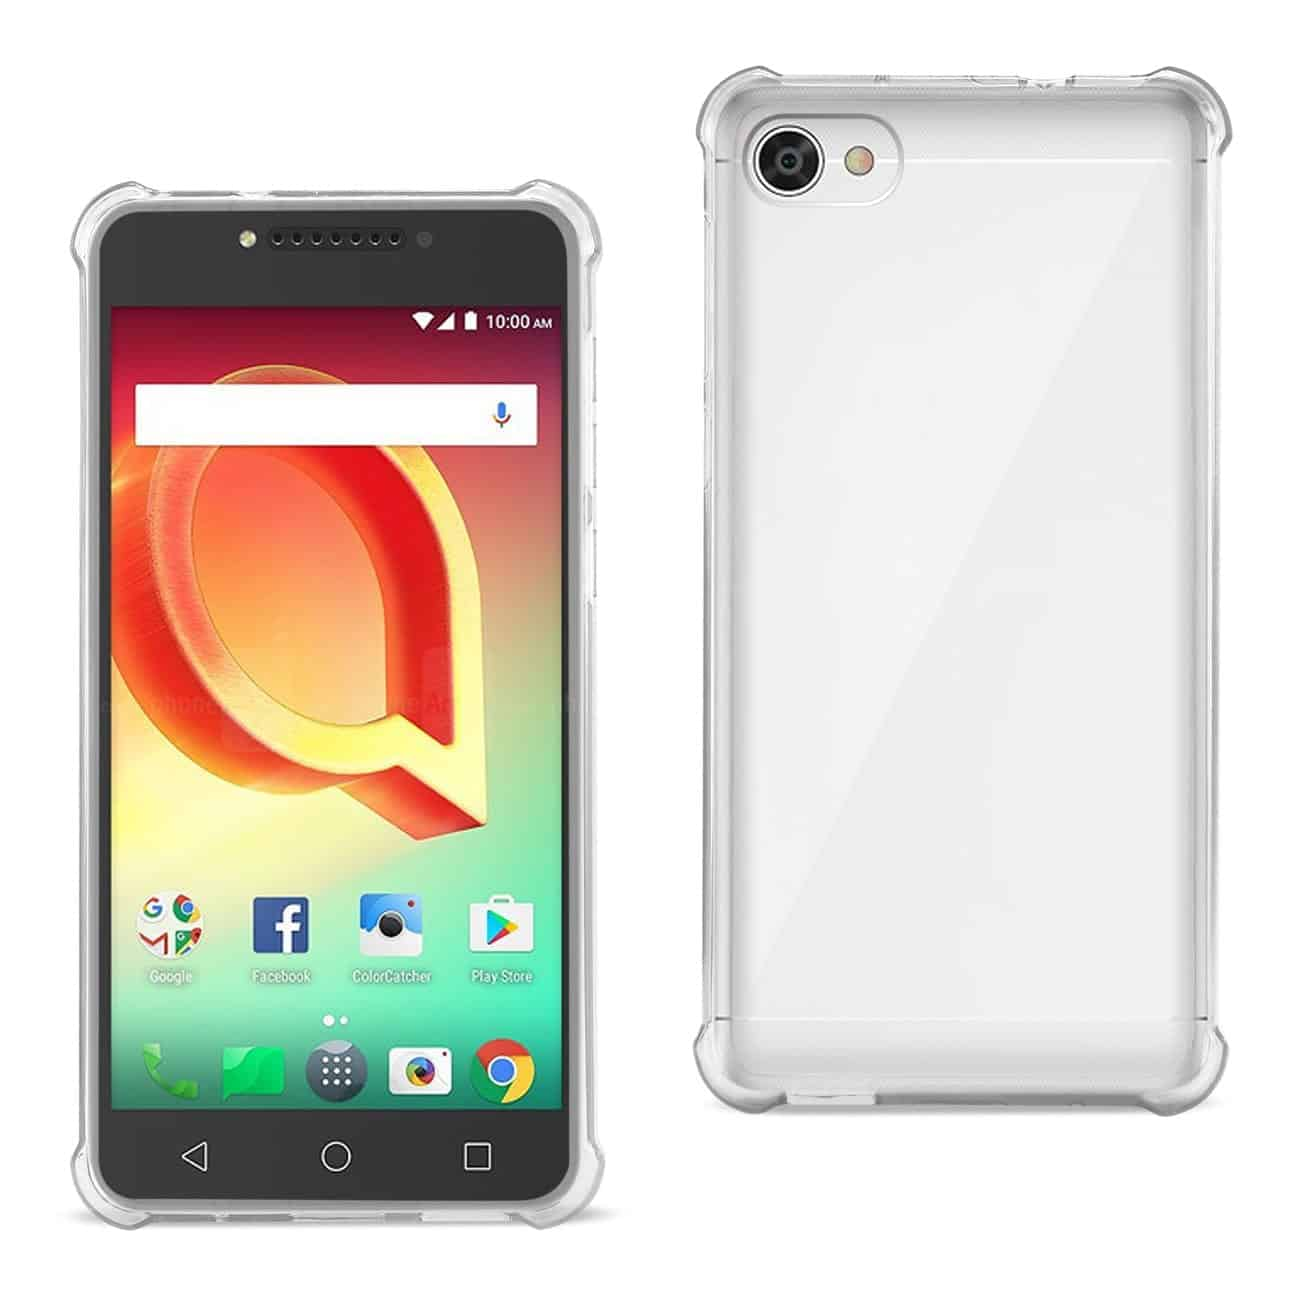 ALCATEL CRAVE CLEAR BUMPER CASE WITH AIR CUSHION PROTECTION IN CLEAR